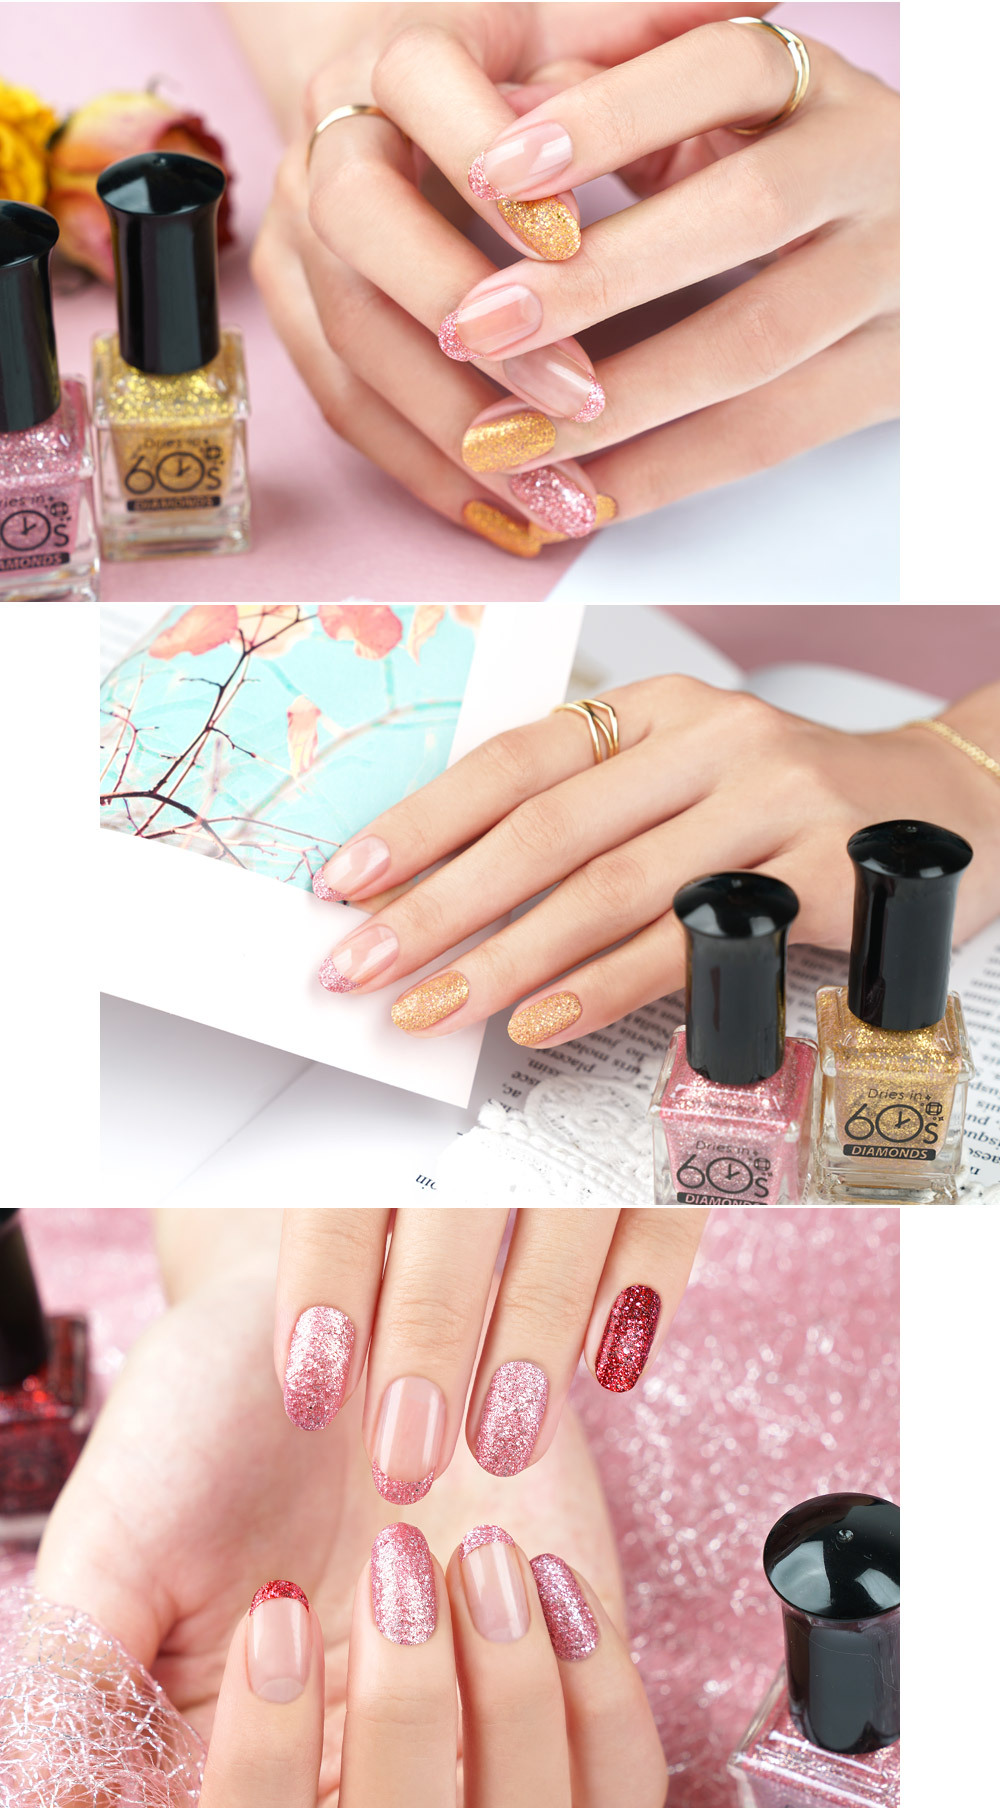 Korean 60 Seconds Nail Polish - Diamond Pearl Nail Polish